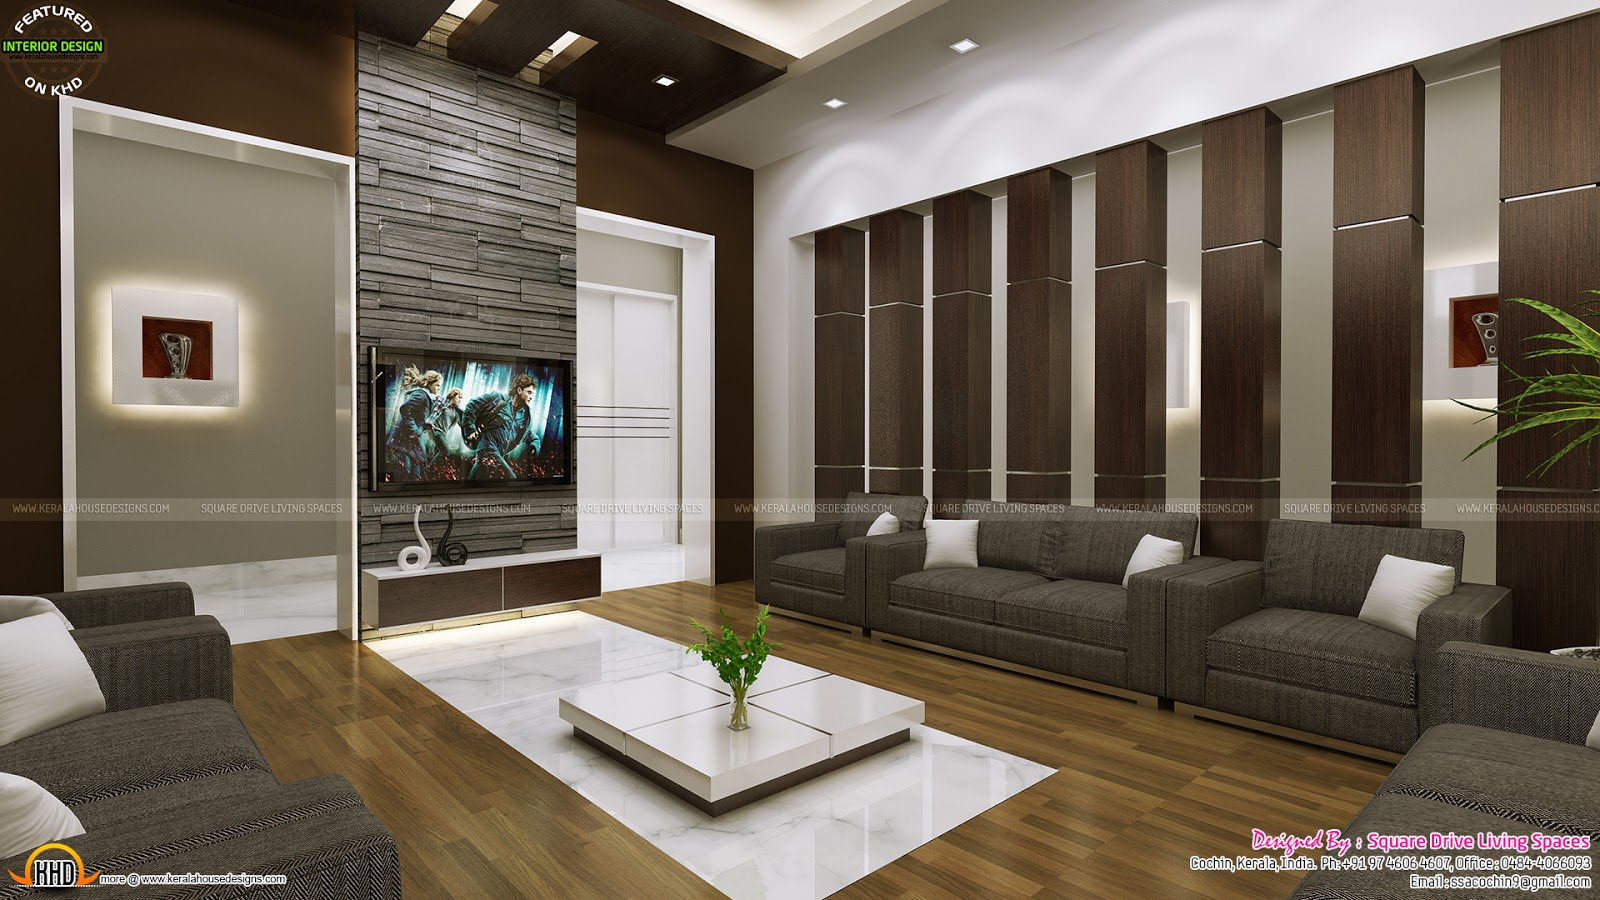 Attractive home interior ideas kerala home design and for Home living room interior design ideas